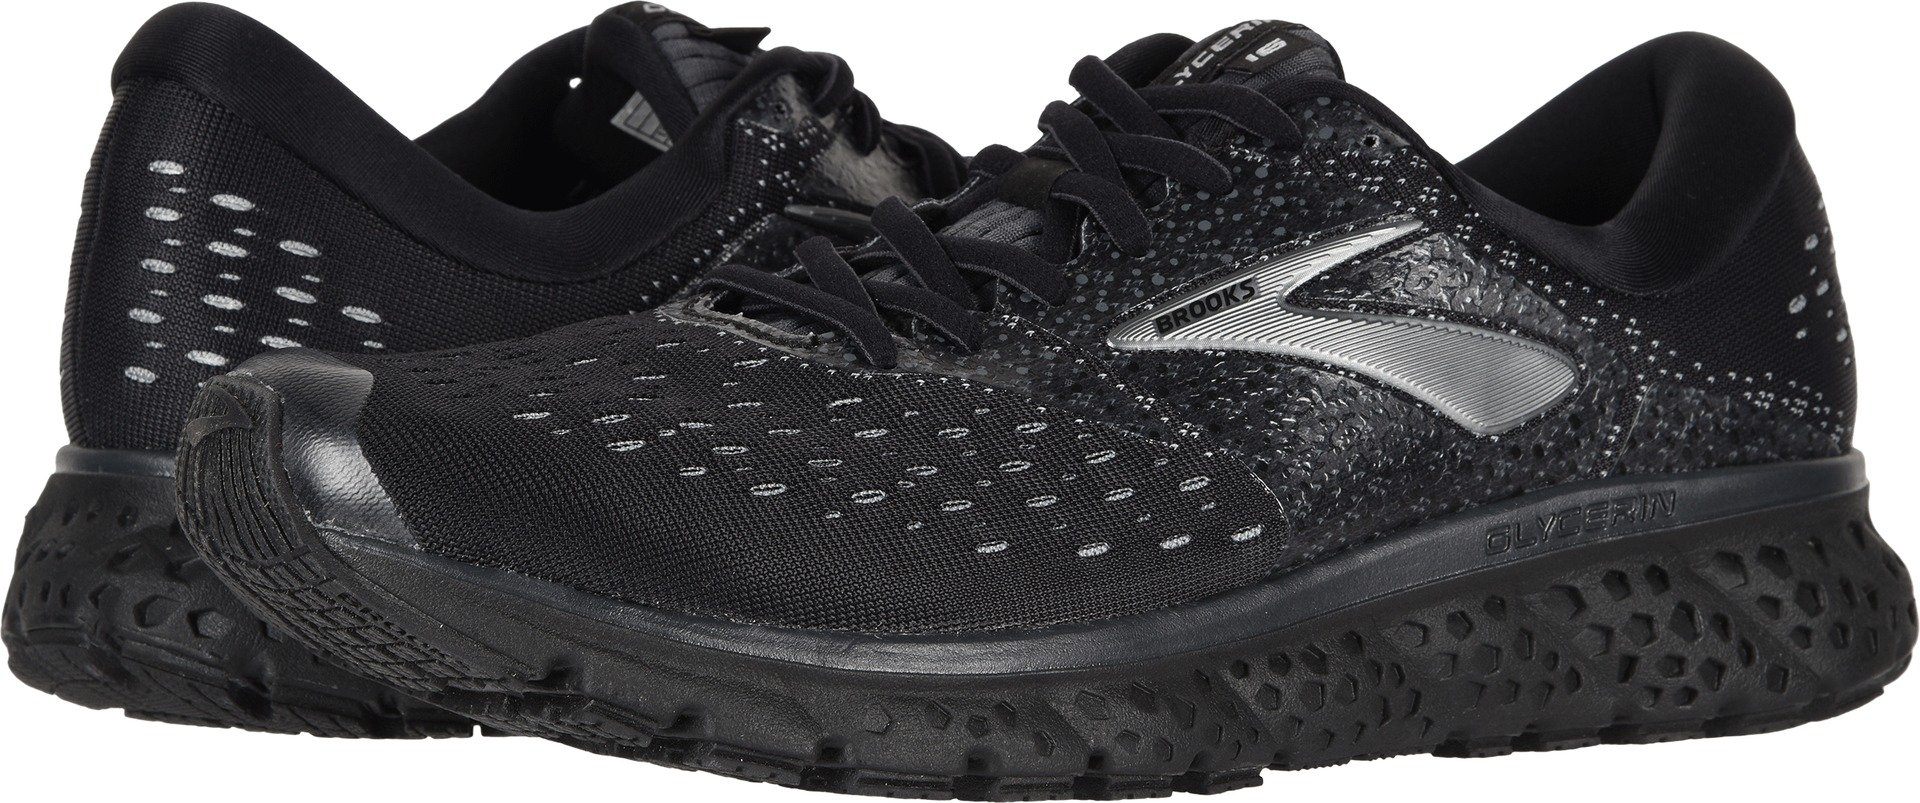 6bd327942c3 Galleon - Brooks Men s Glycerin 16 Black Ebony 11.5 EE US